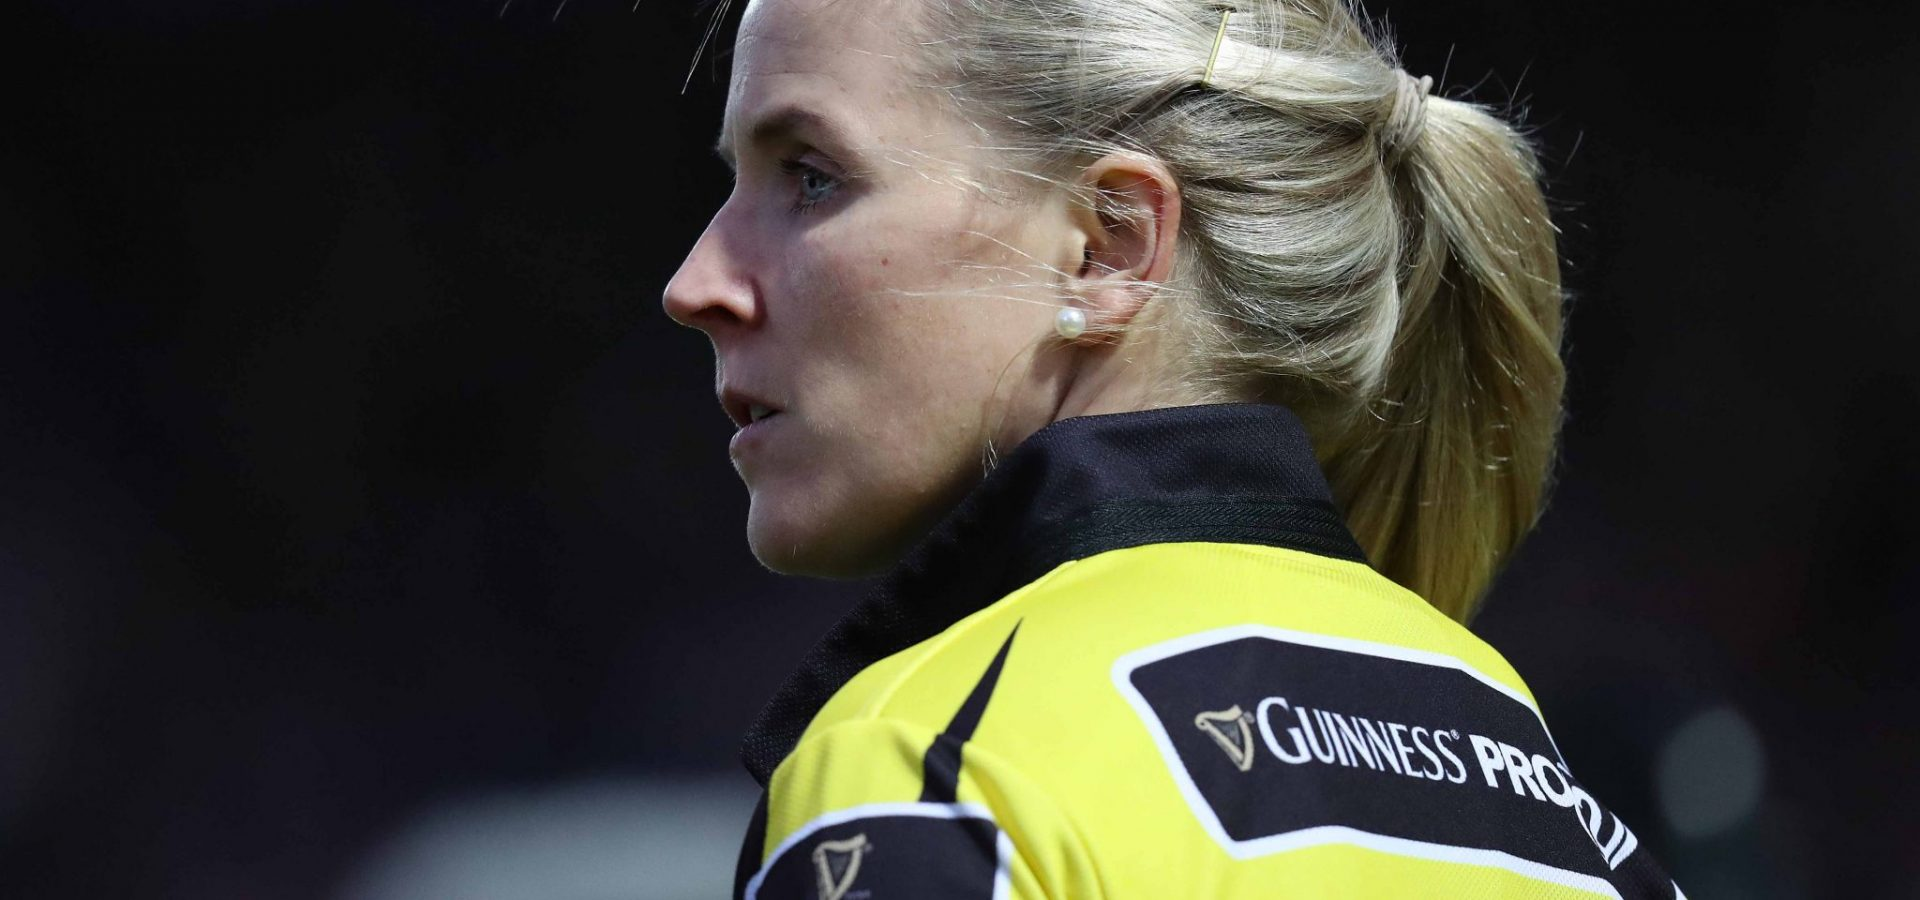 JOY NEVILLE<br>WORLD RUGBY REFEREE OF THE YEAR